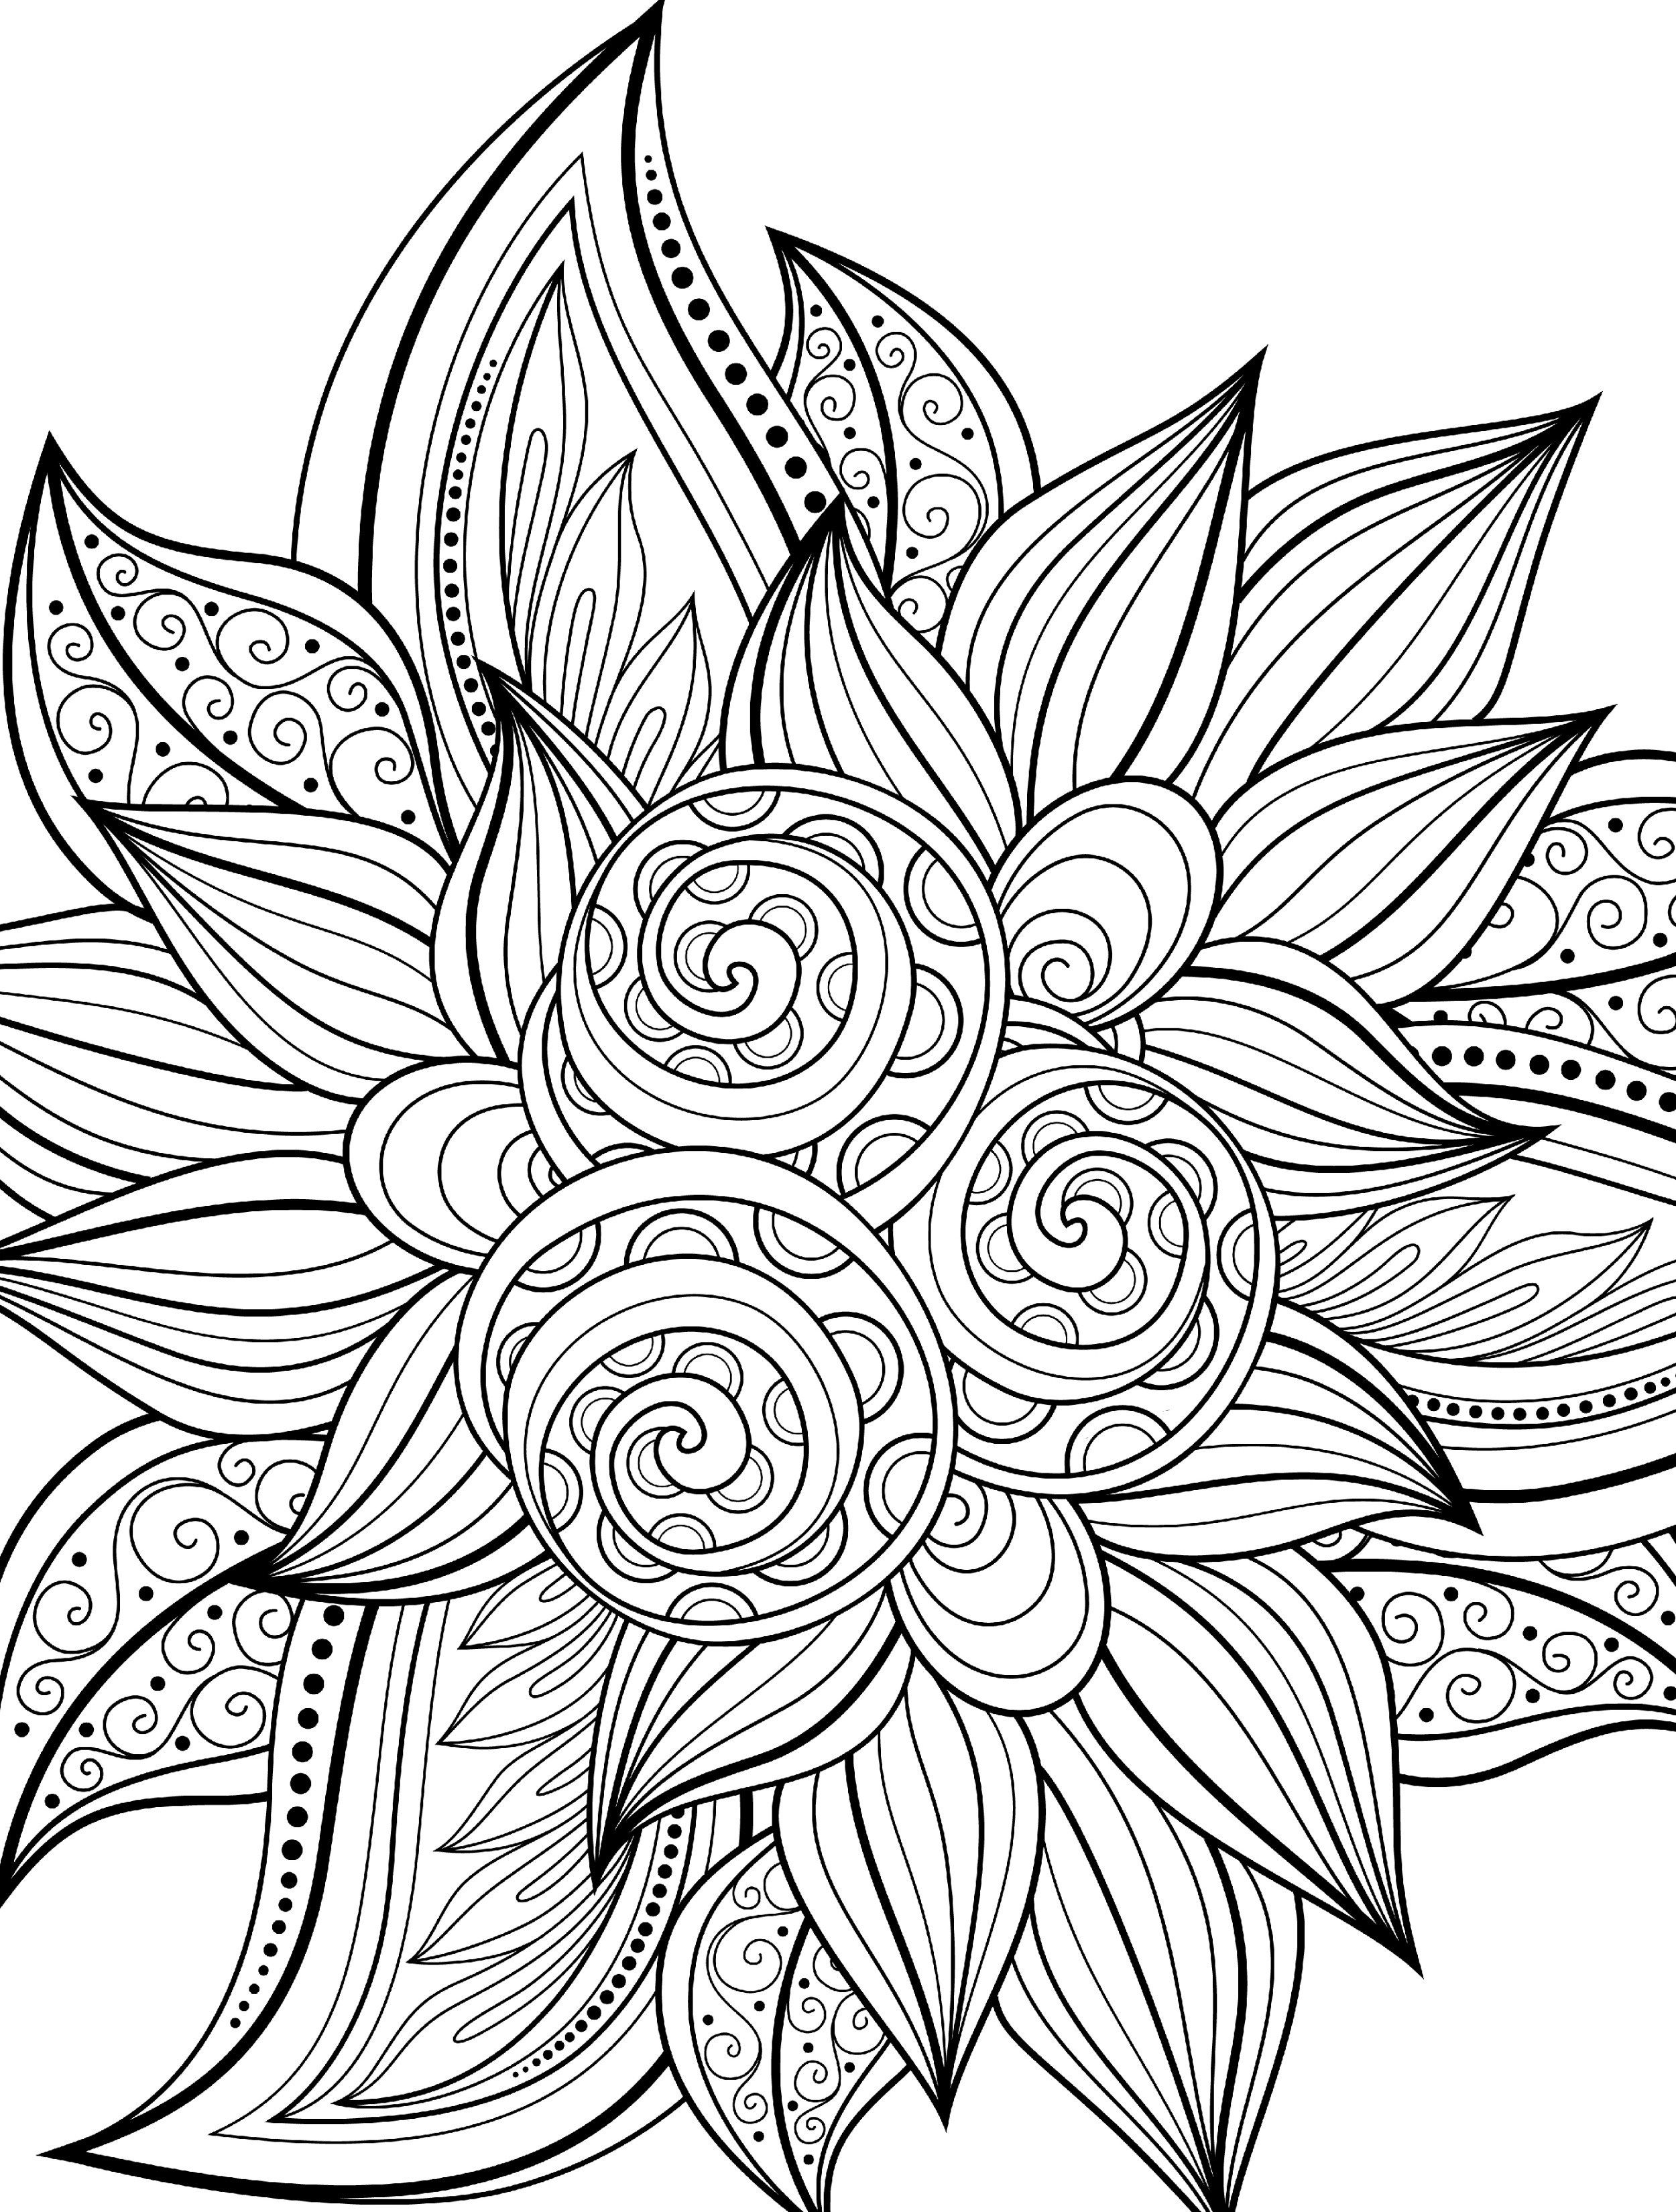 10 free printable holiday adult coloring pages - Printable Color